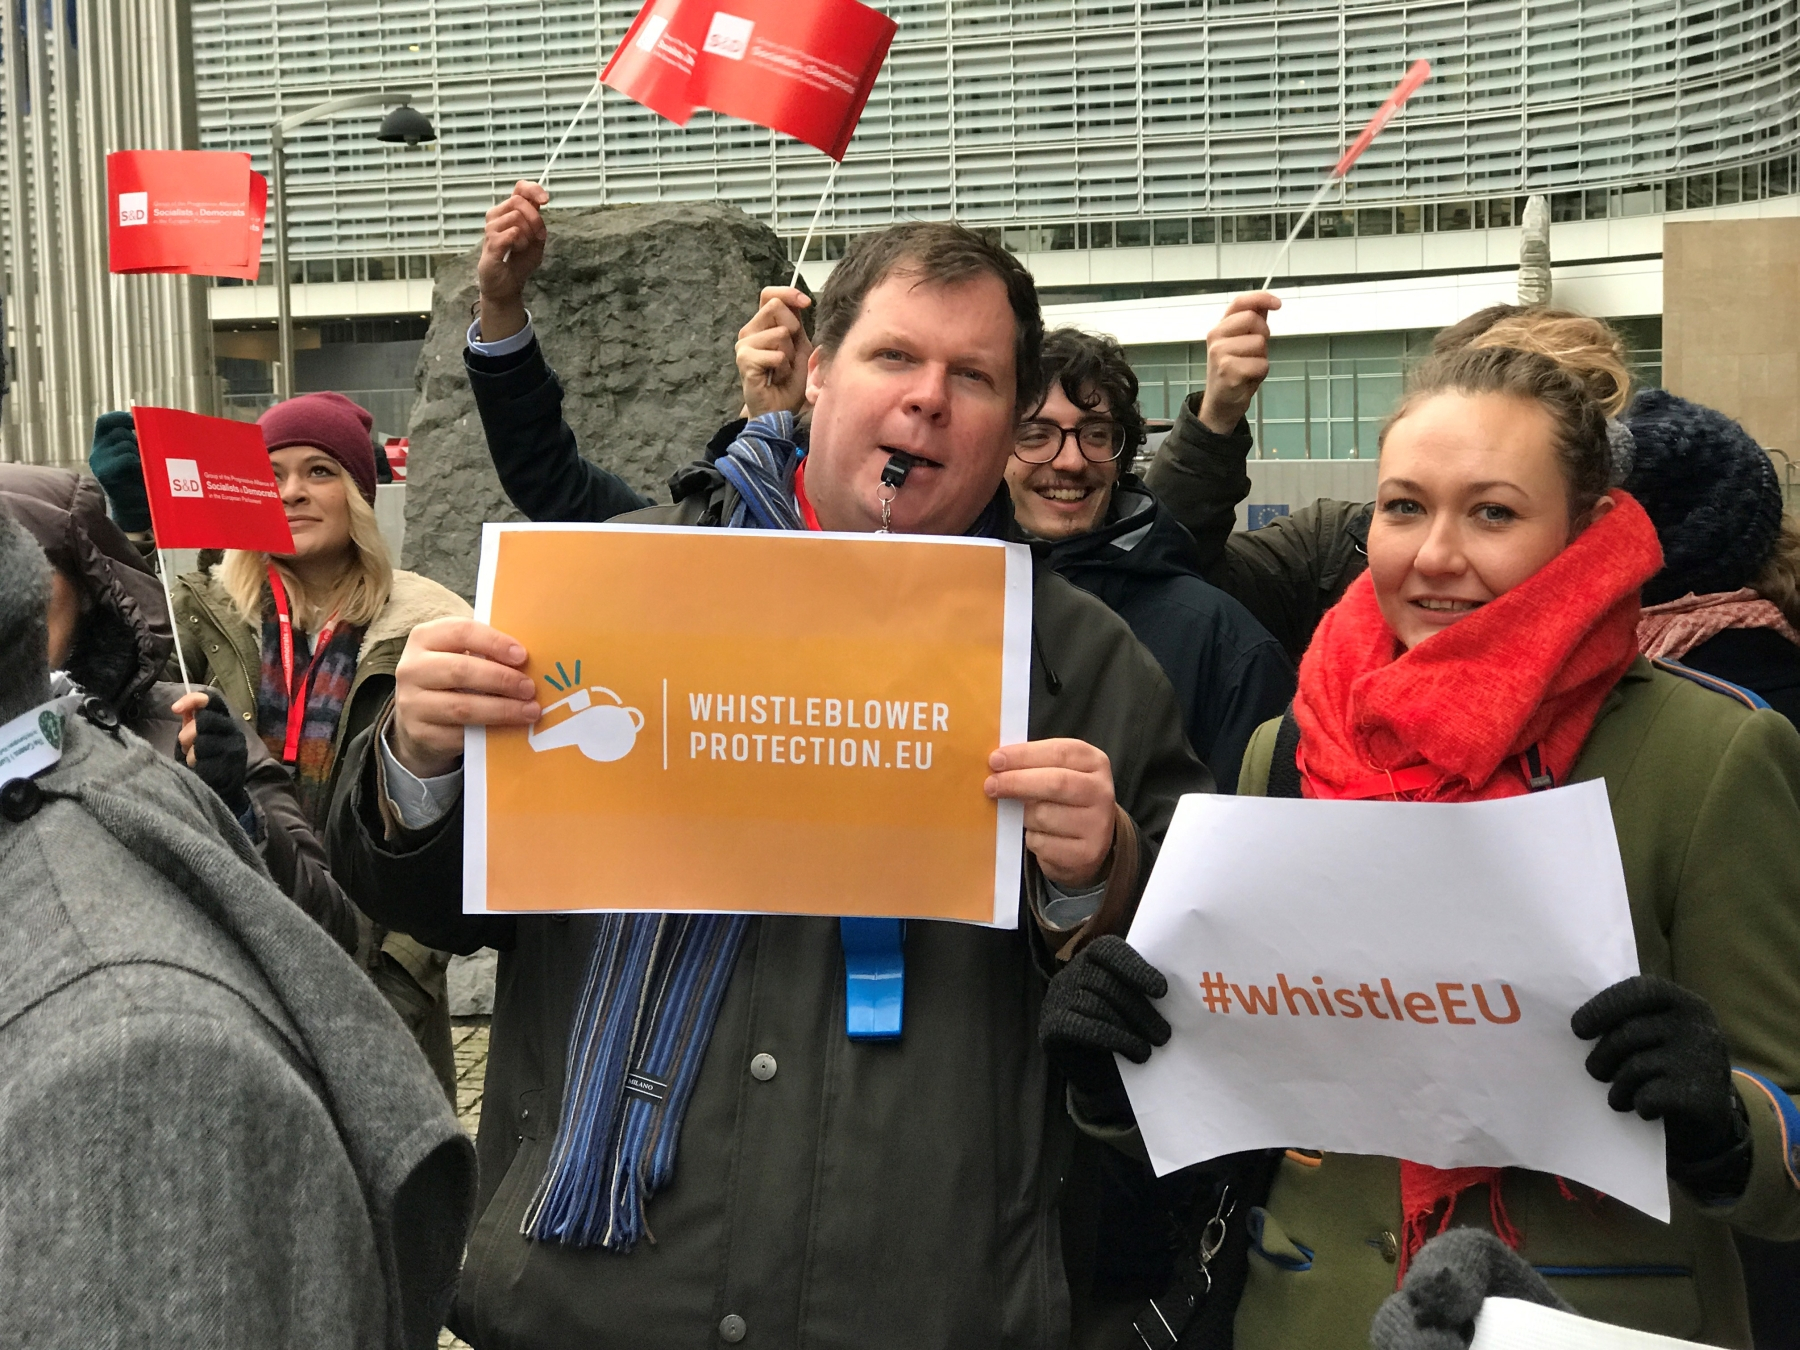 Martin Jefflén and Janina Mackiewicz from Eurocadres at the action outside Berlaymont.